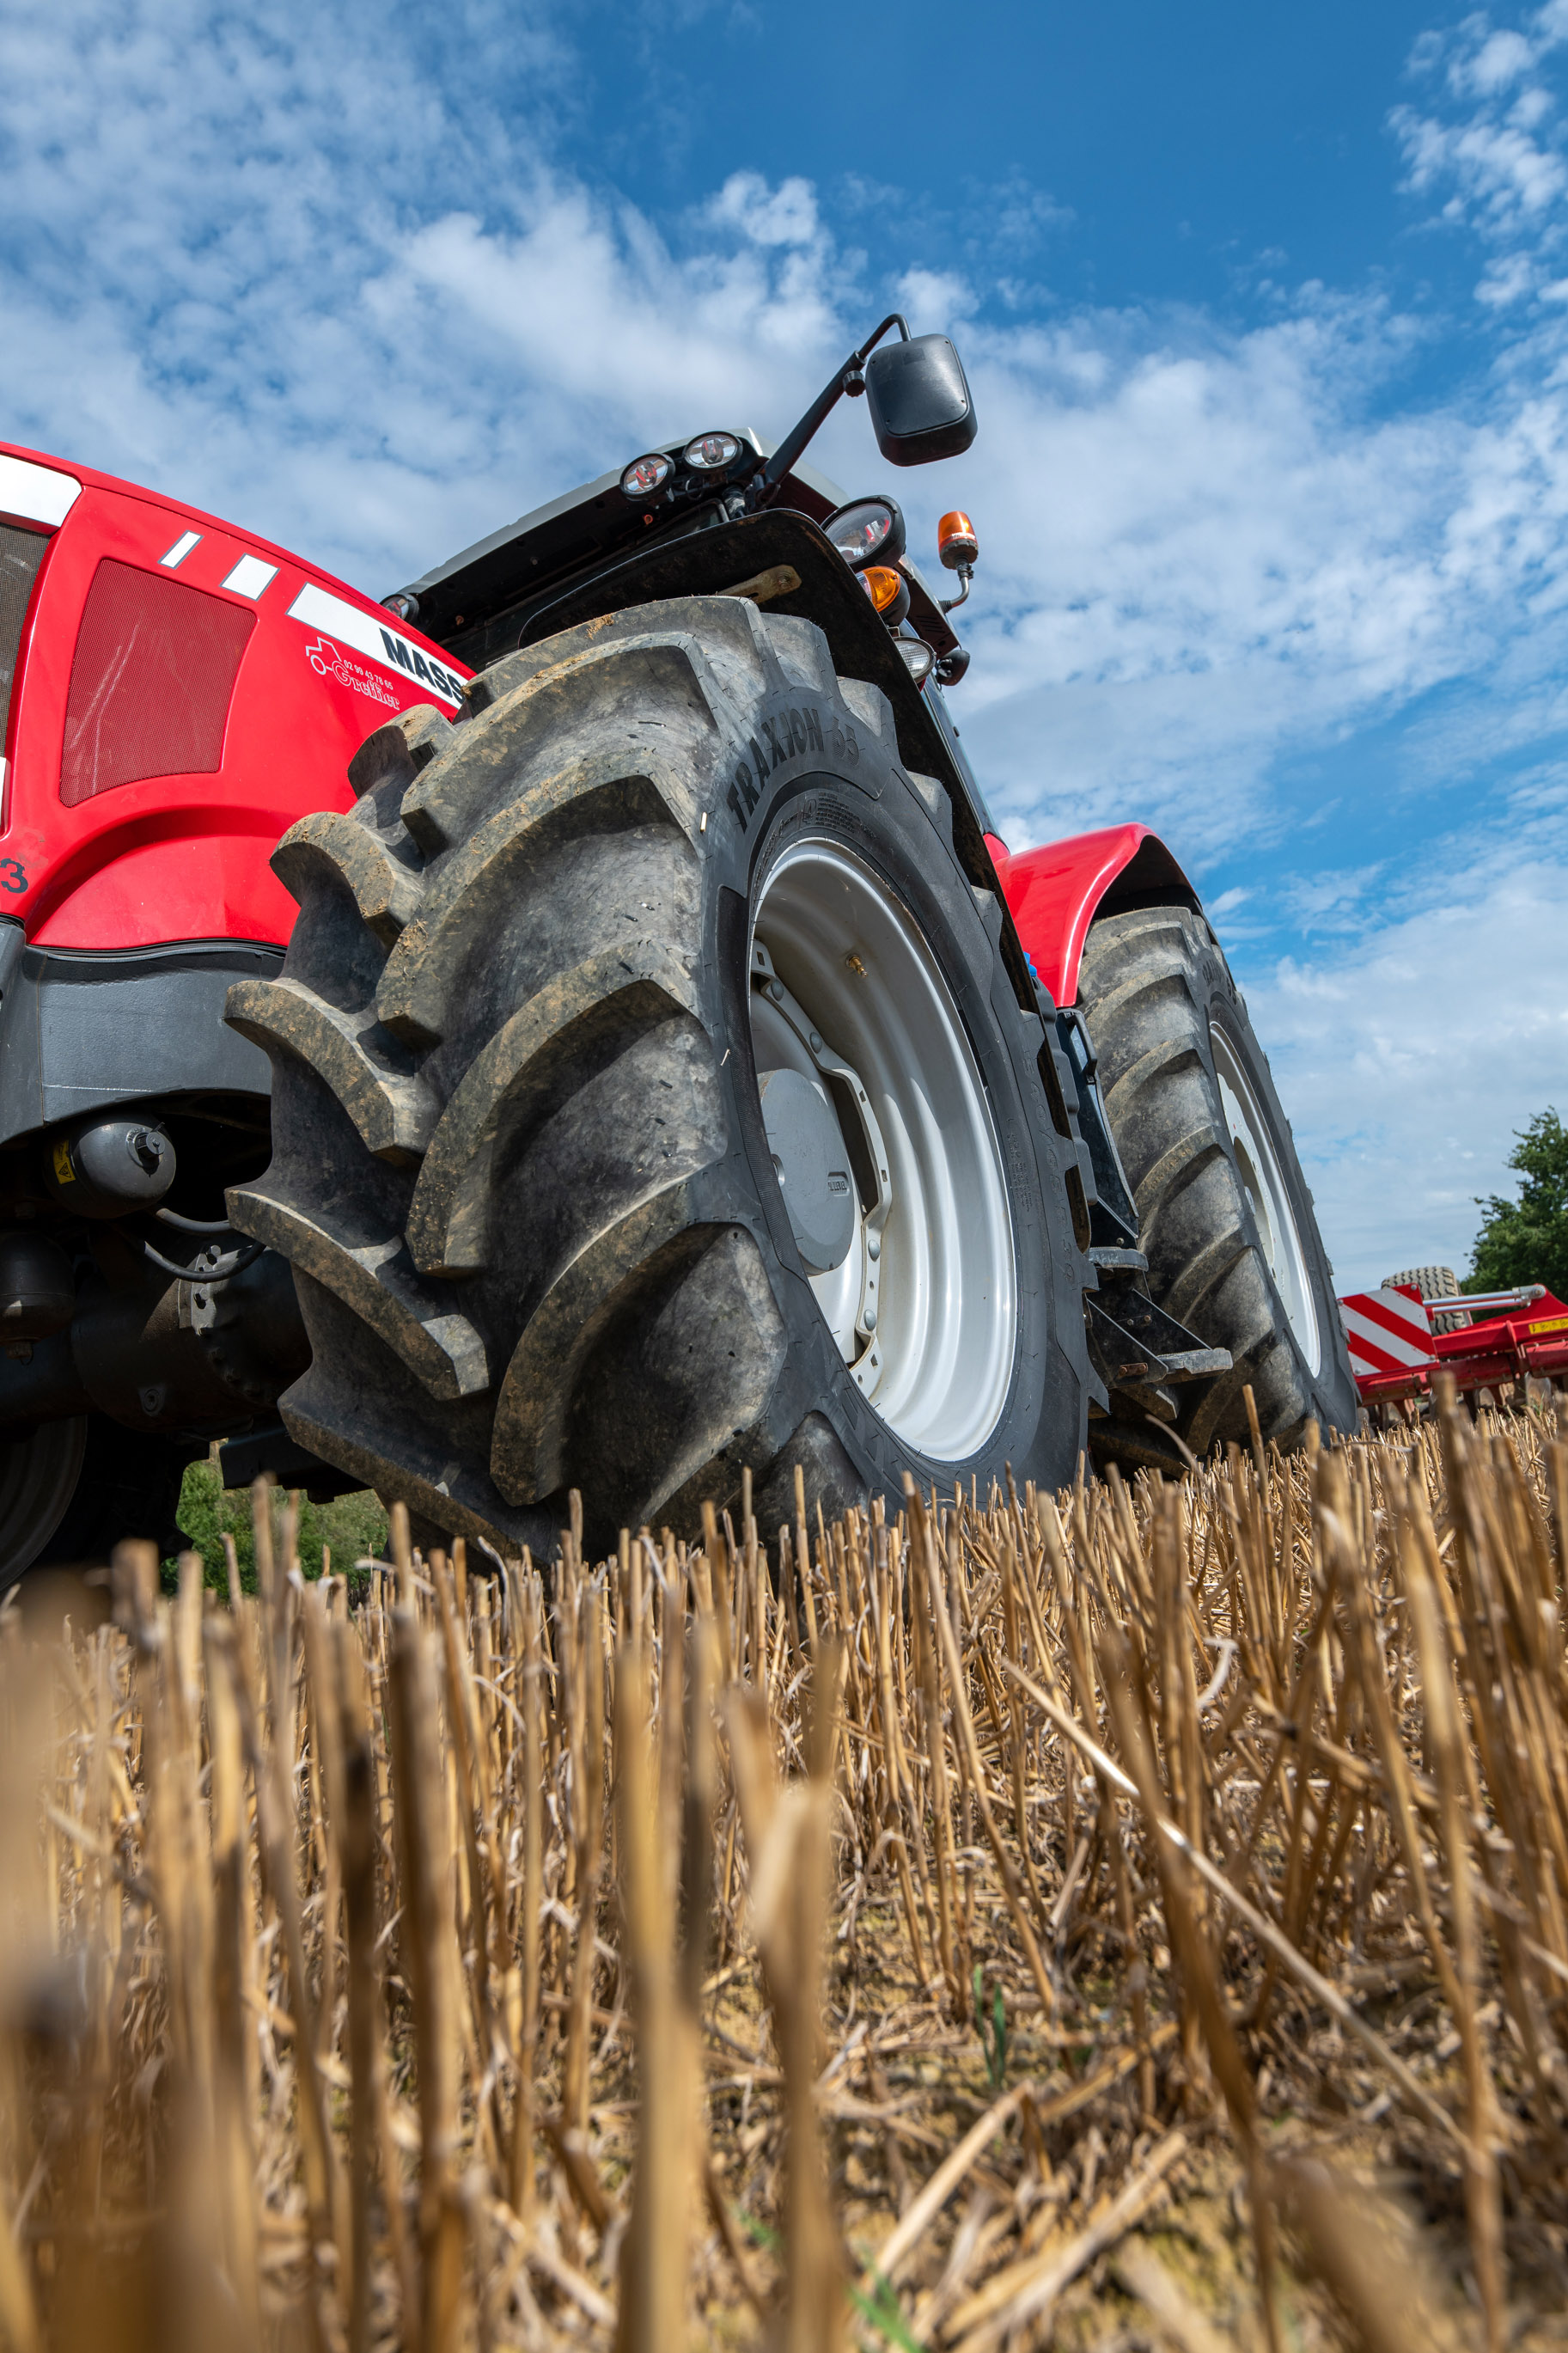 01-New-Vredestein-Traxion-65-reduces-in-cabin-noise-by-29-percent